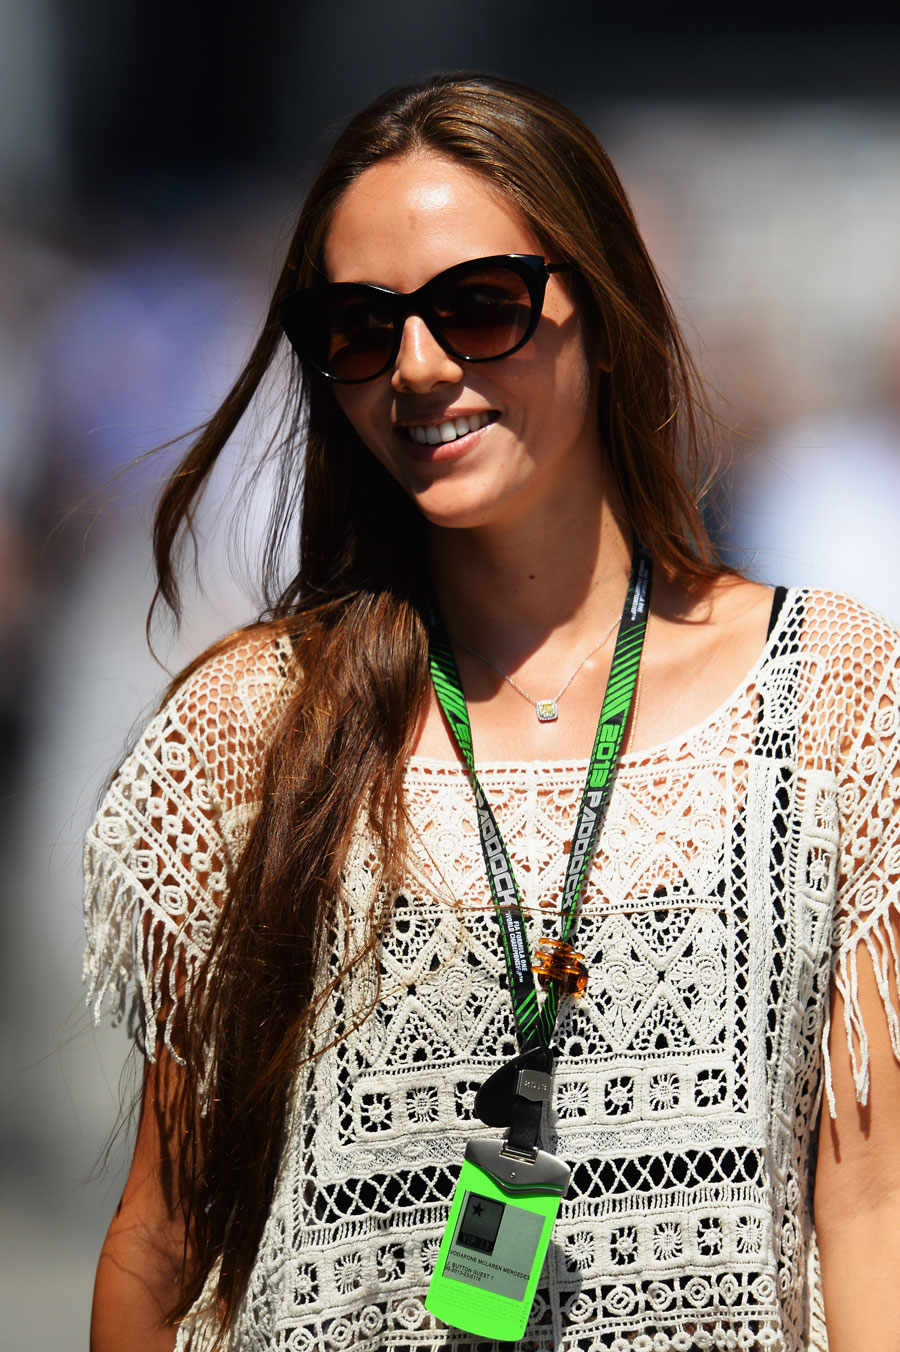 Jessica Michibata walks through the paddock